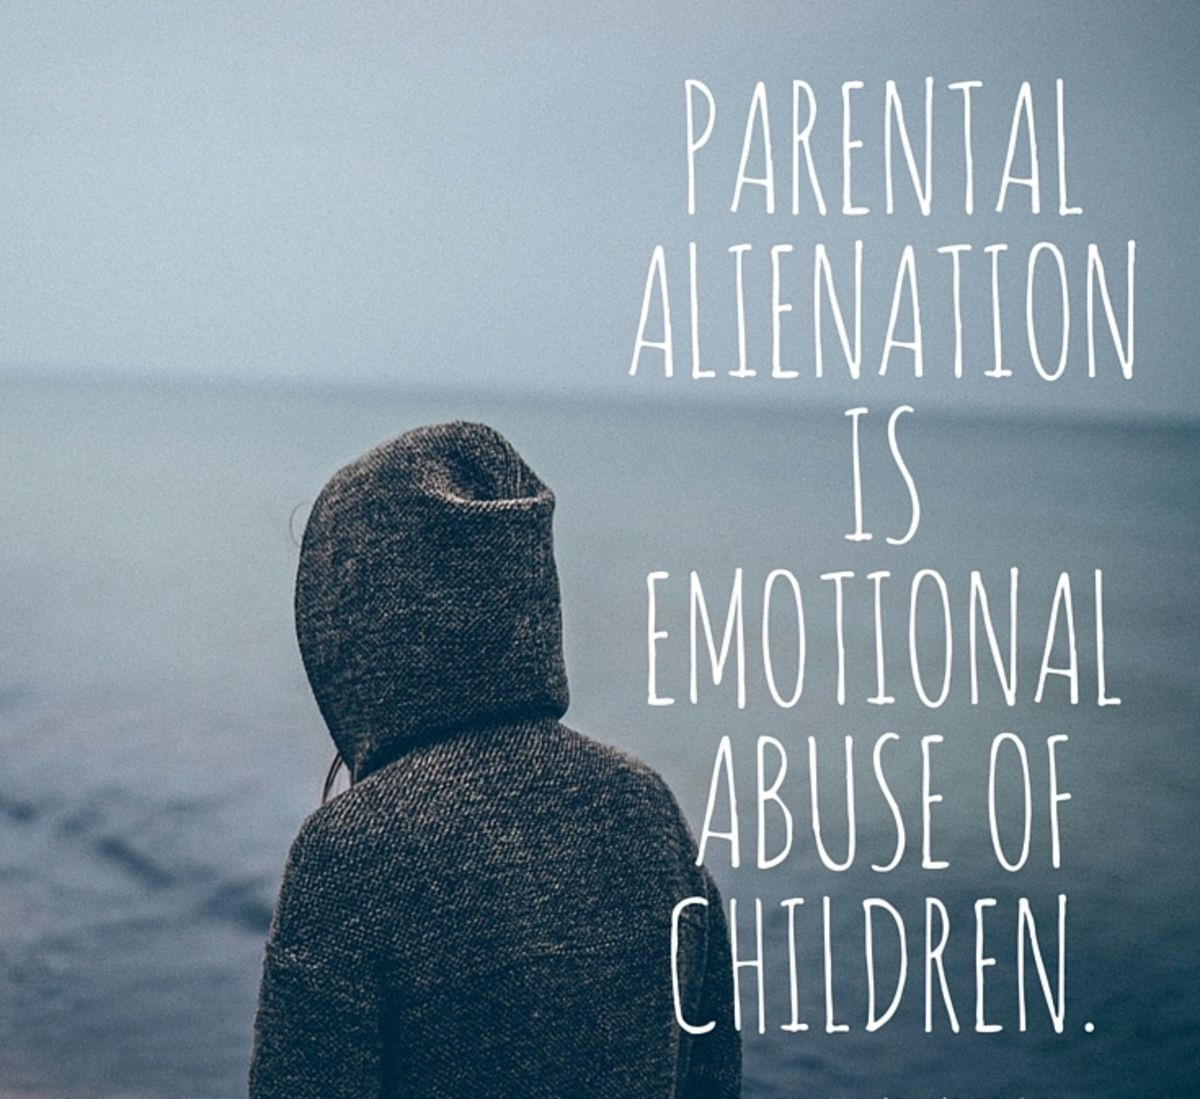 Parental Alienation: What Is the Solution? | Psychology Today